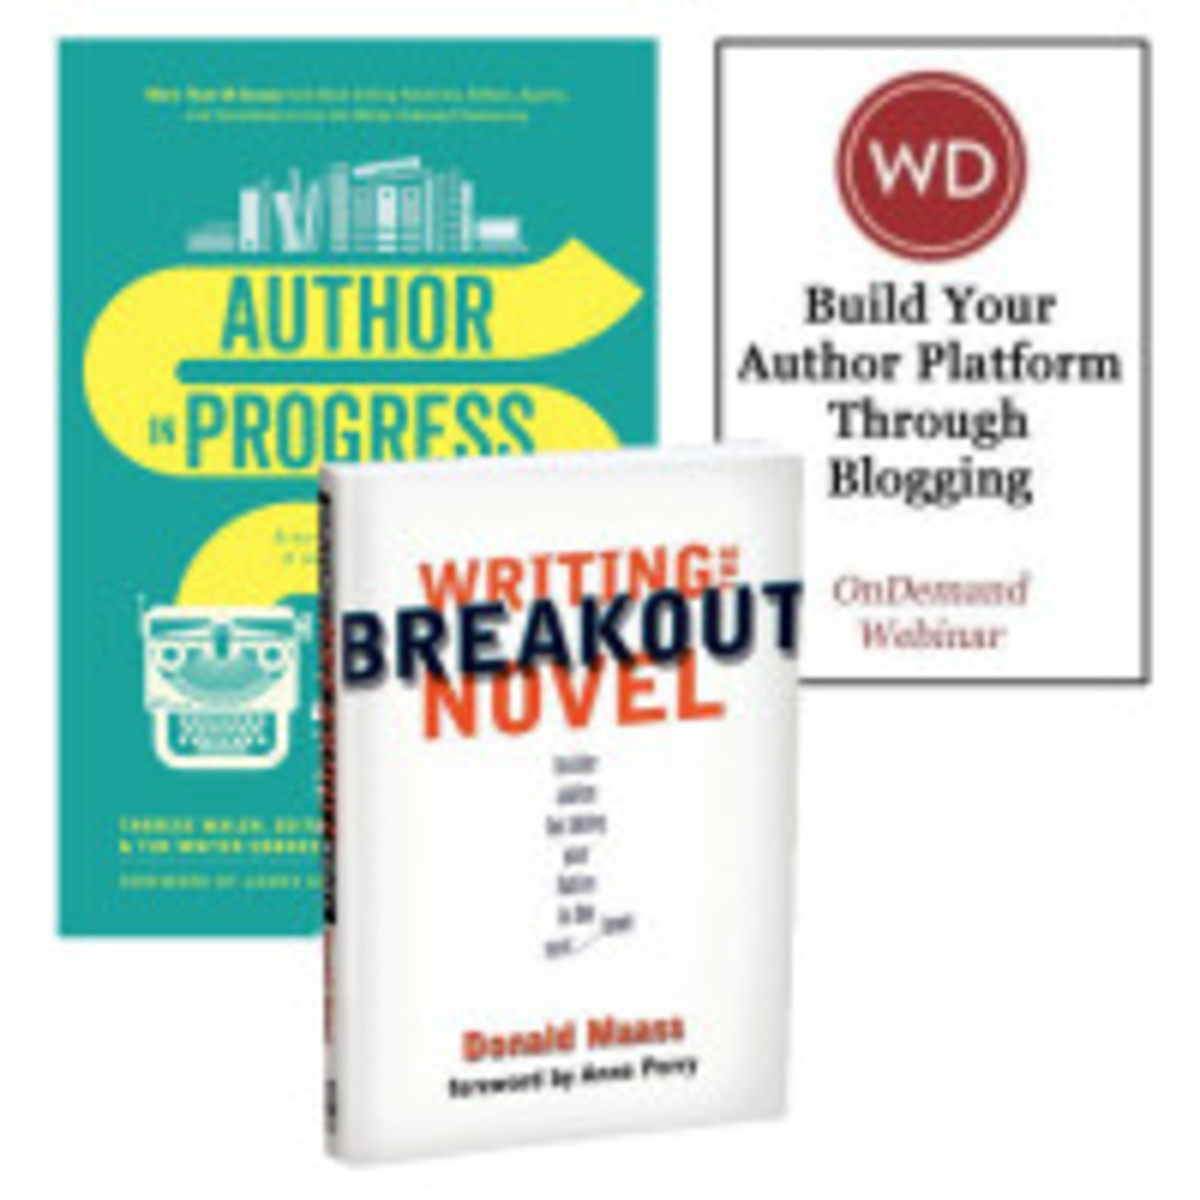 Bundle: Author in Progress + Build Your Own Author Platform Through Blogging + Writing The Breakout Novel